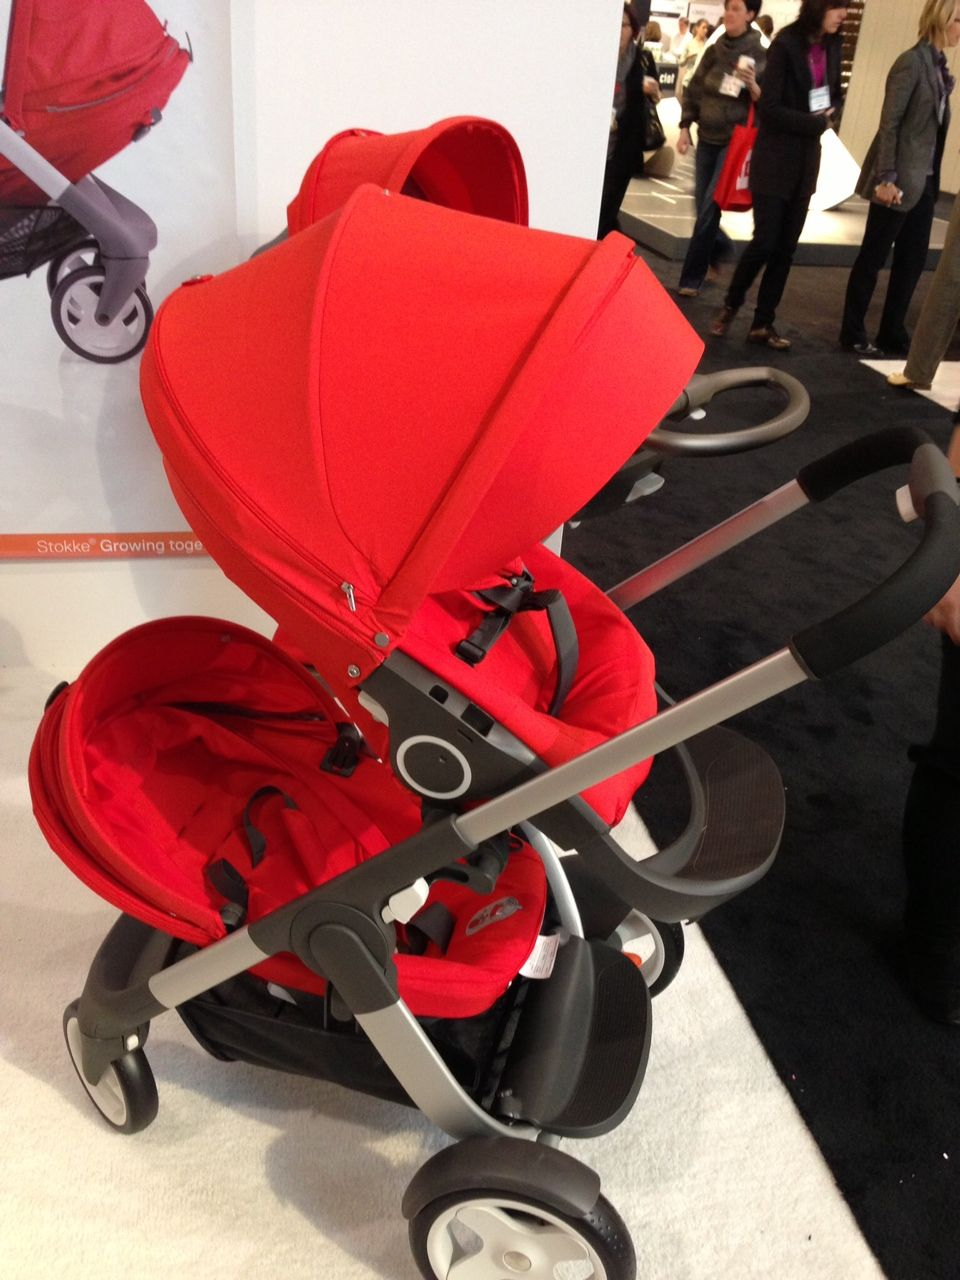 New Stokke Crusi makes its debut in Canada! Stroller